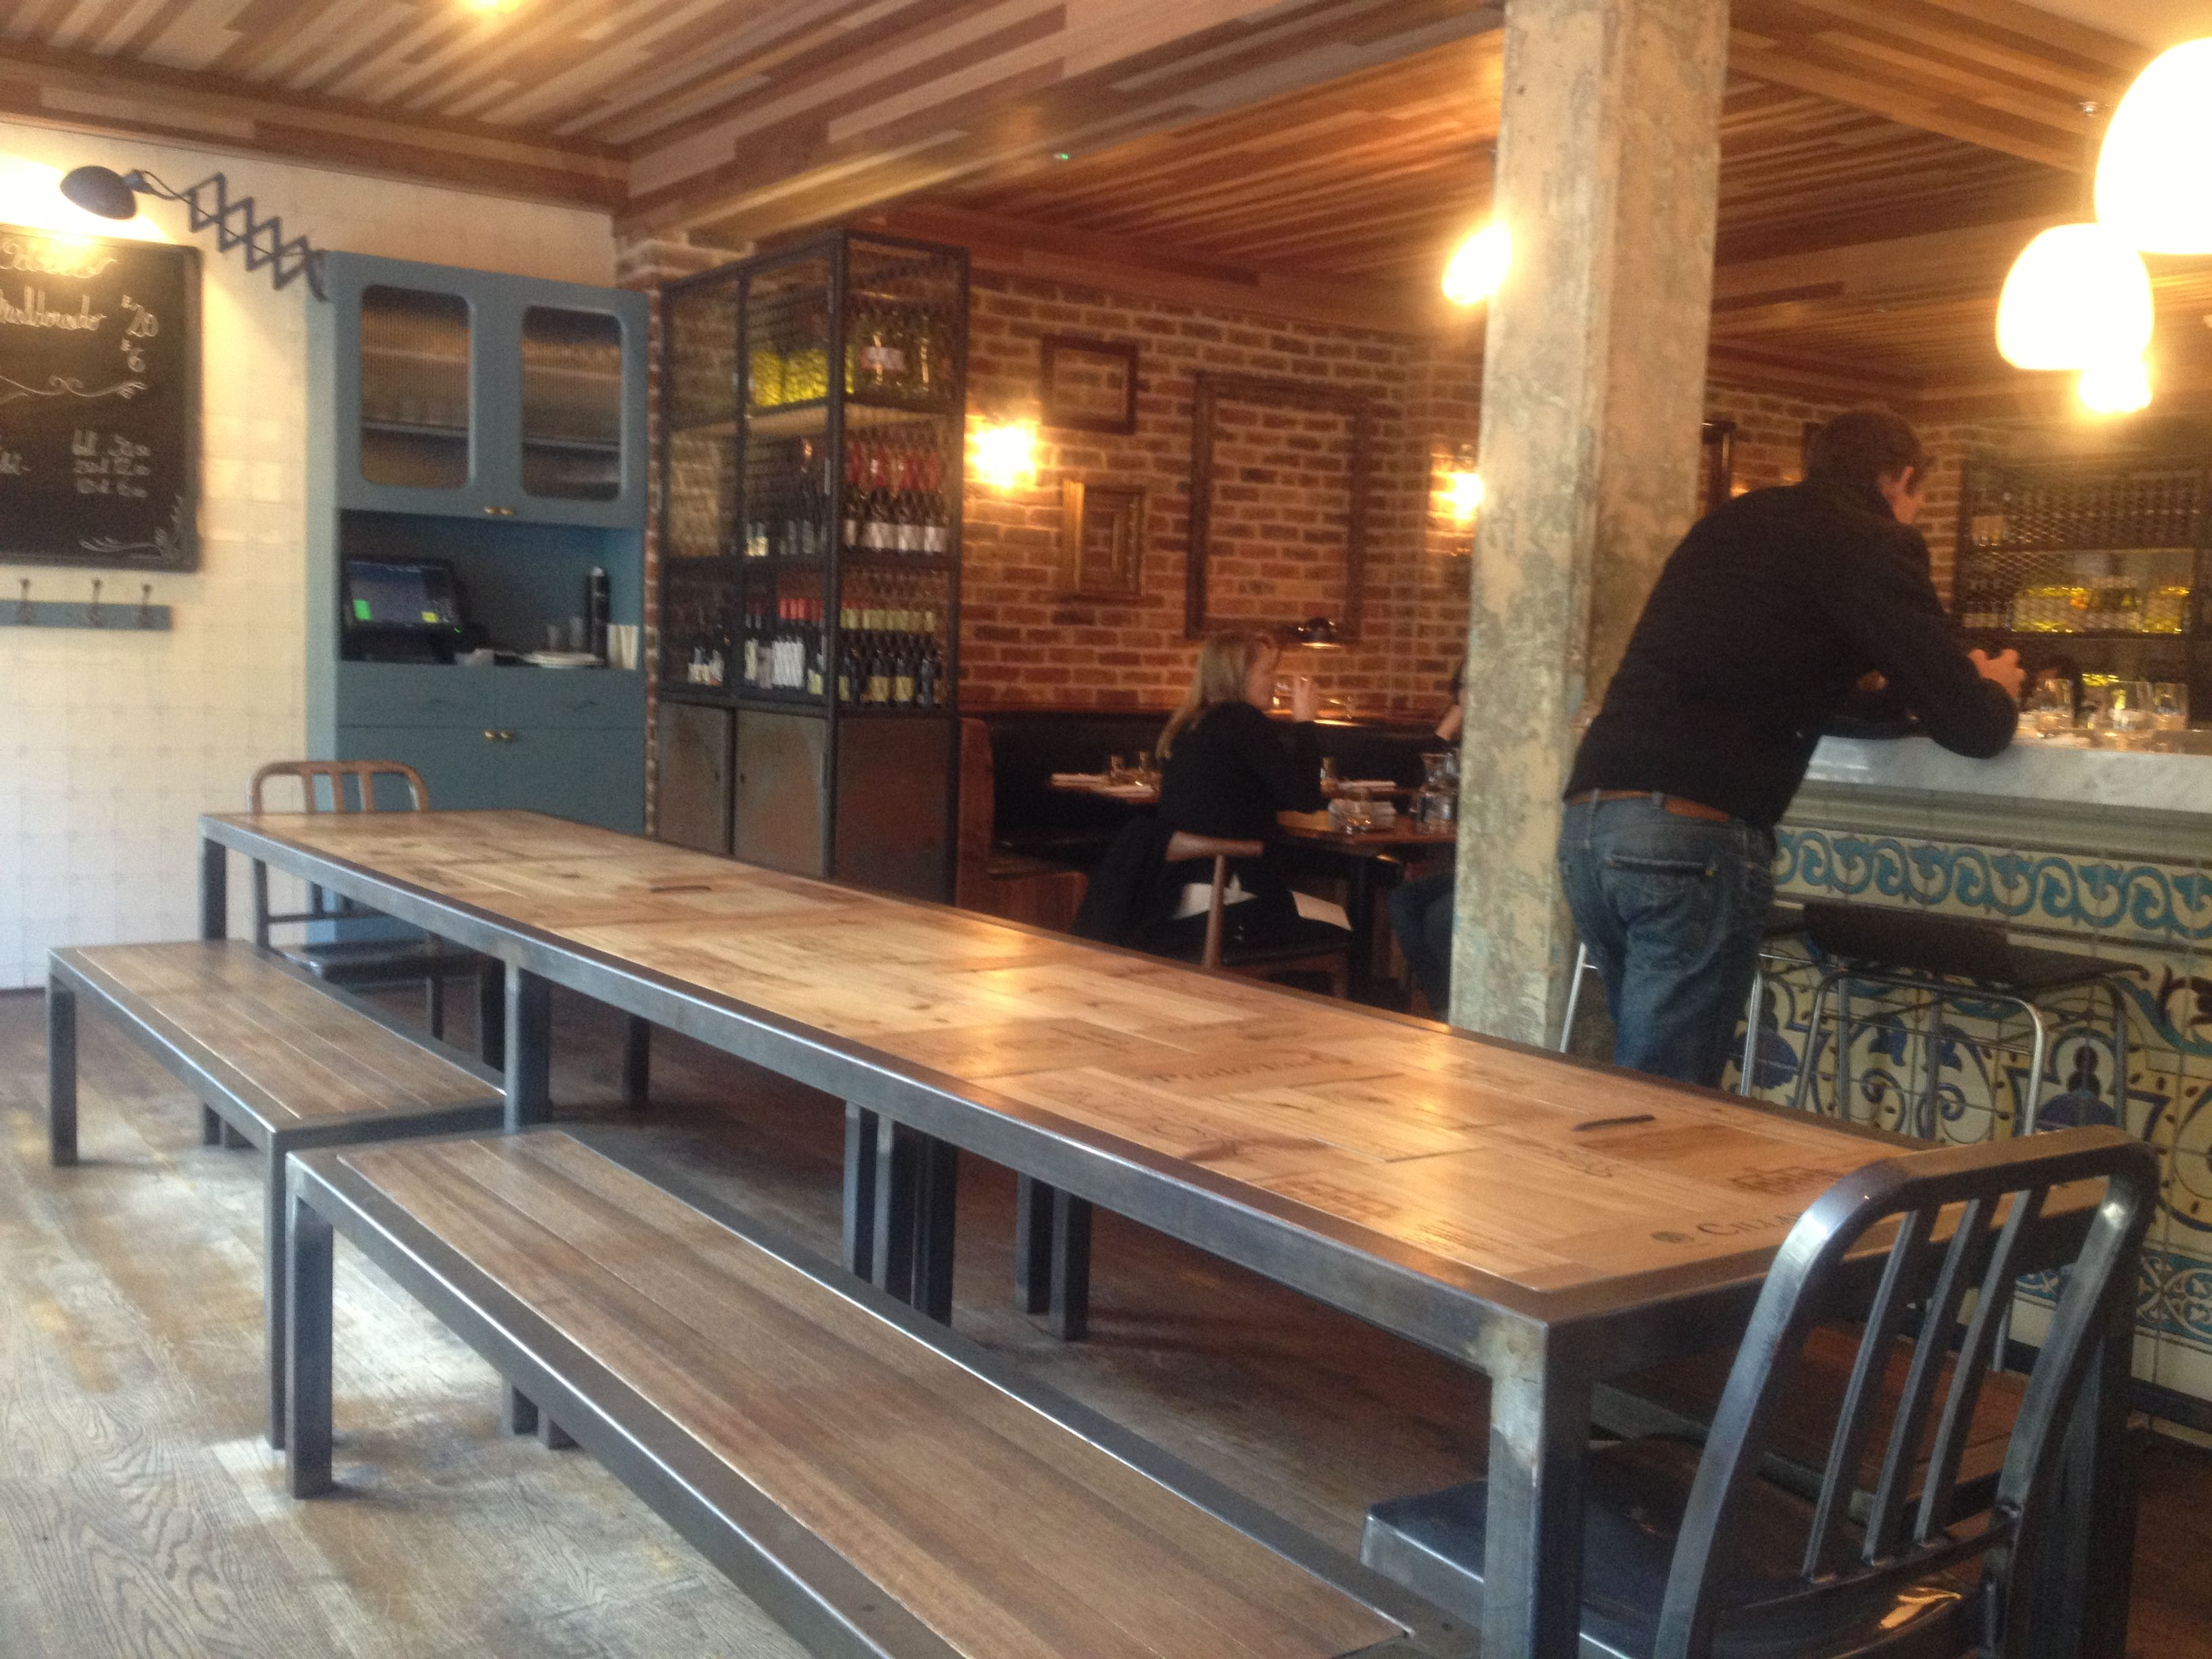 Restaurant Kitchen Table people at bar table - buscar con google | bars | pinterest